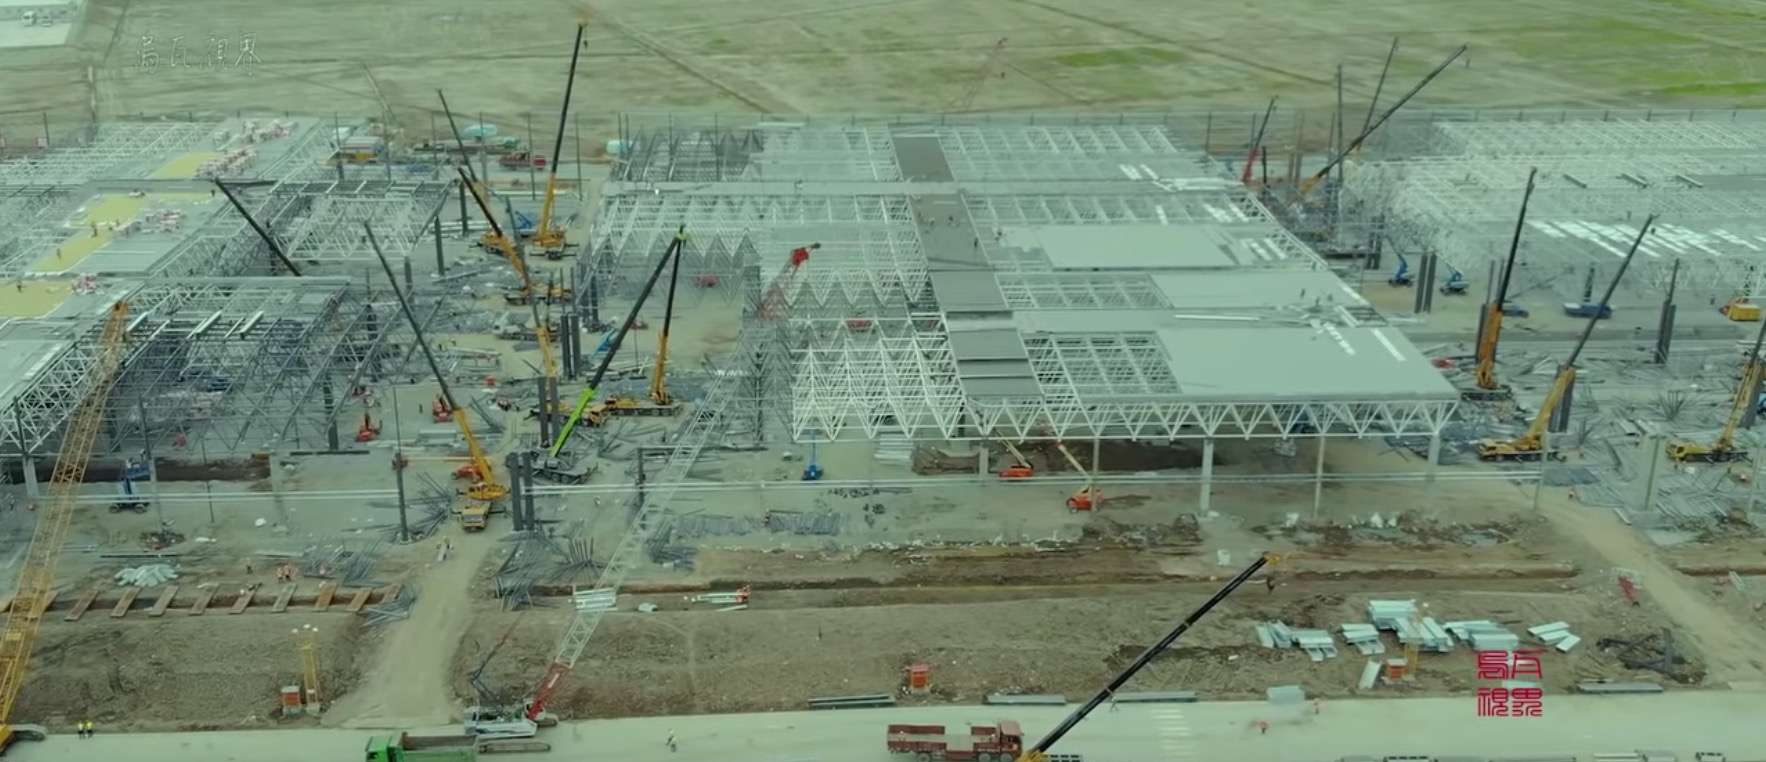 Tesla Gigafactory 3 video update: structure is growing at breakneck pace